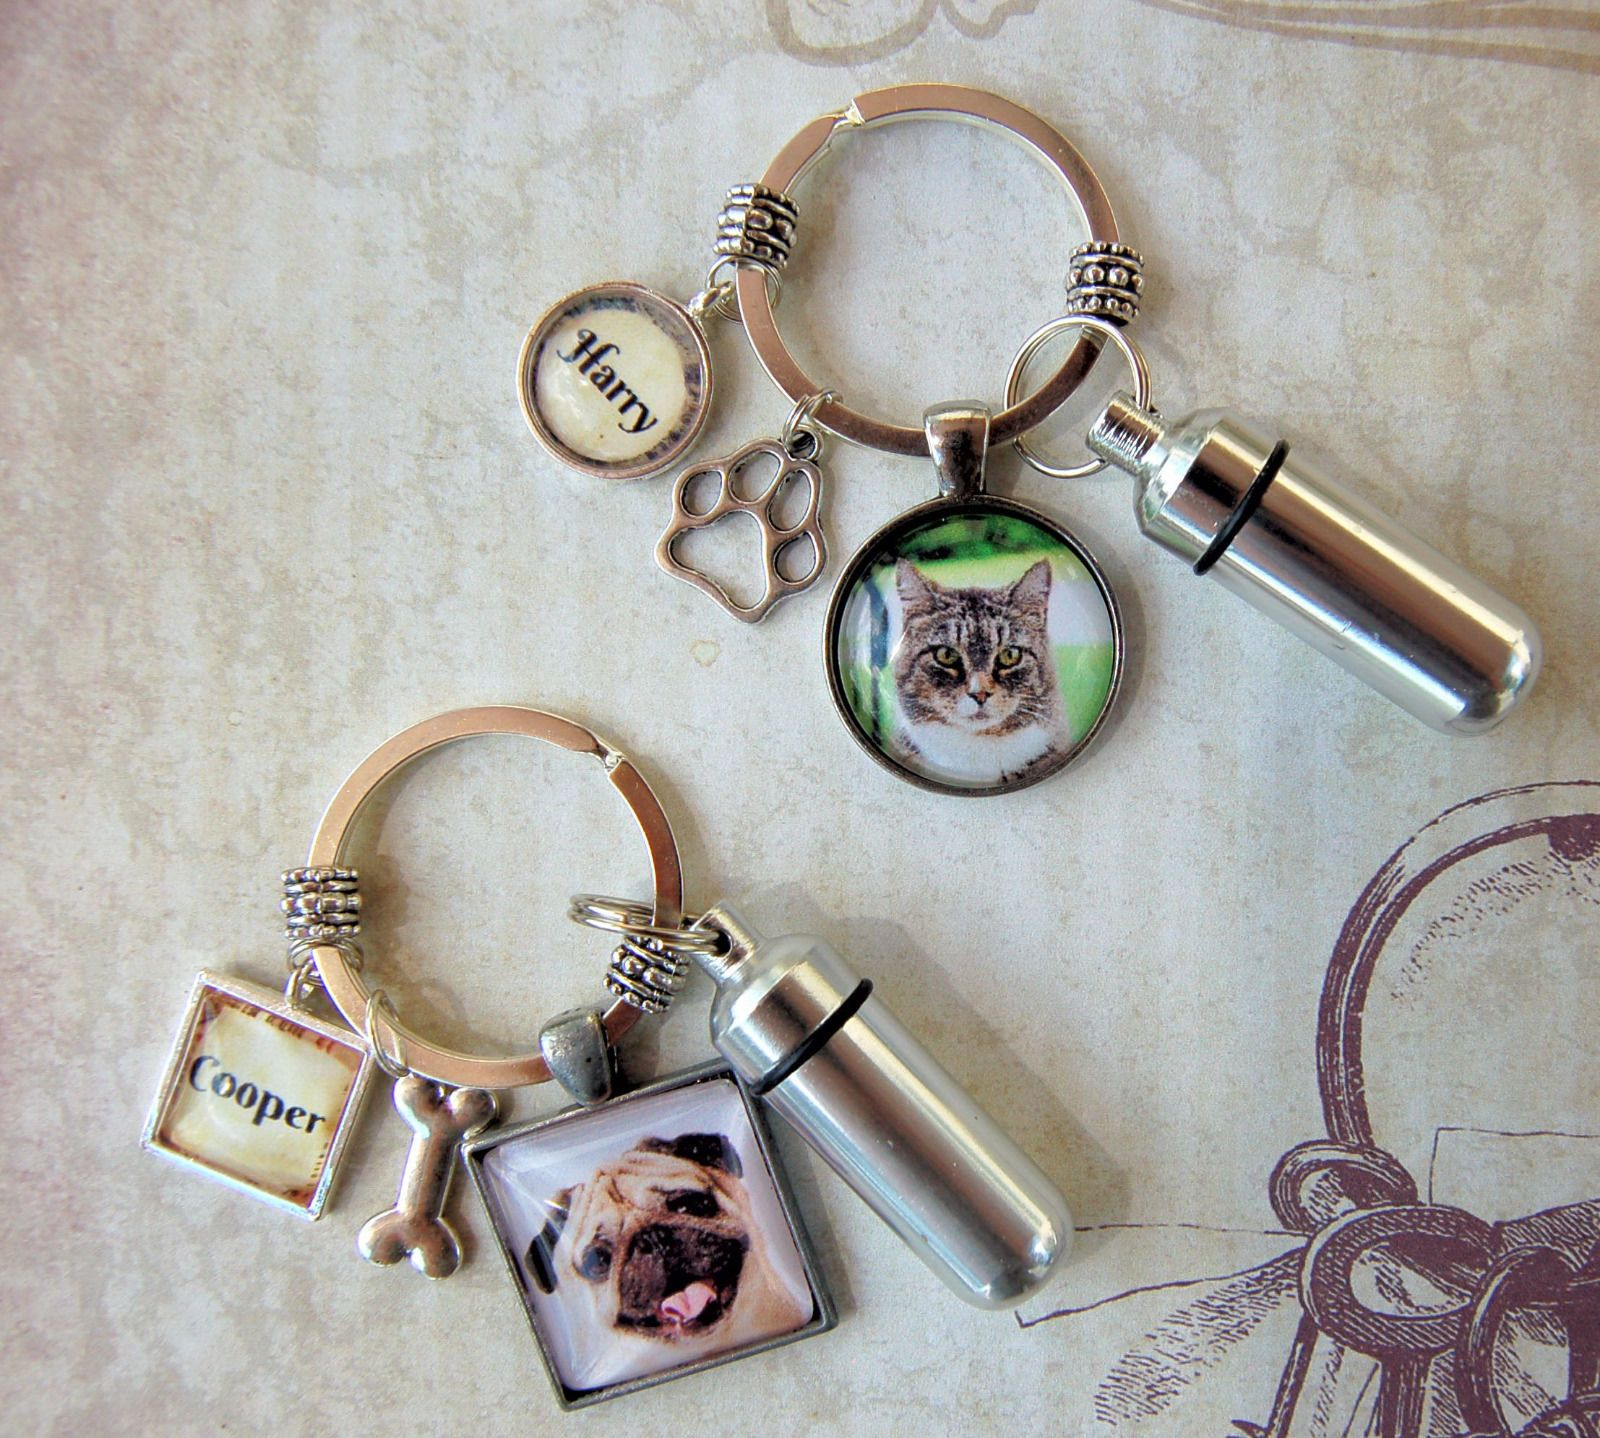 cool Pet Memorial Key Ring with Custom Photo and Cremation Urn Loss of Cat or Dog   Check more at http://harmonisproduction.com/pet-memorial-key-ring-with-custom-photo-and-cremation-urn-loss-of-cat-or-dog/